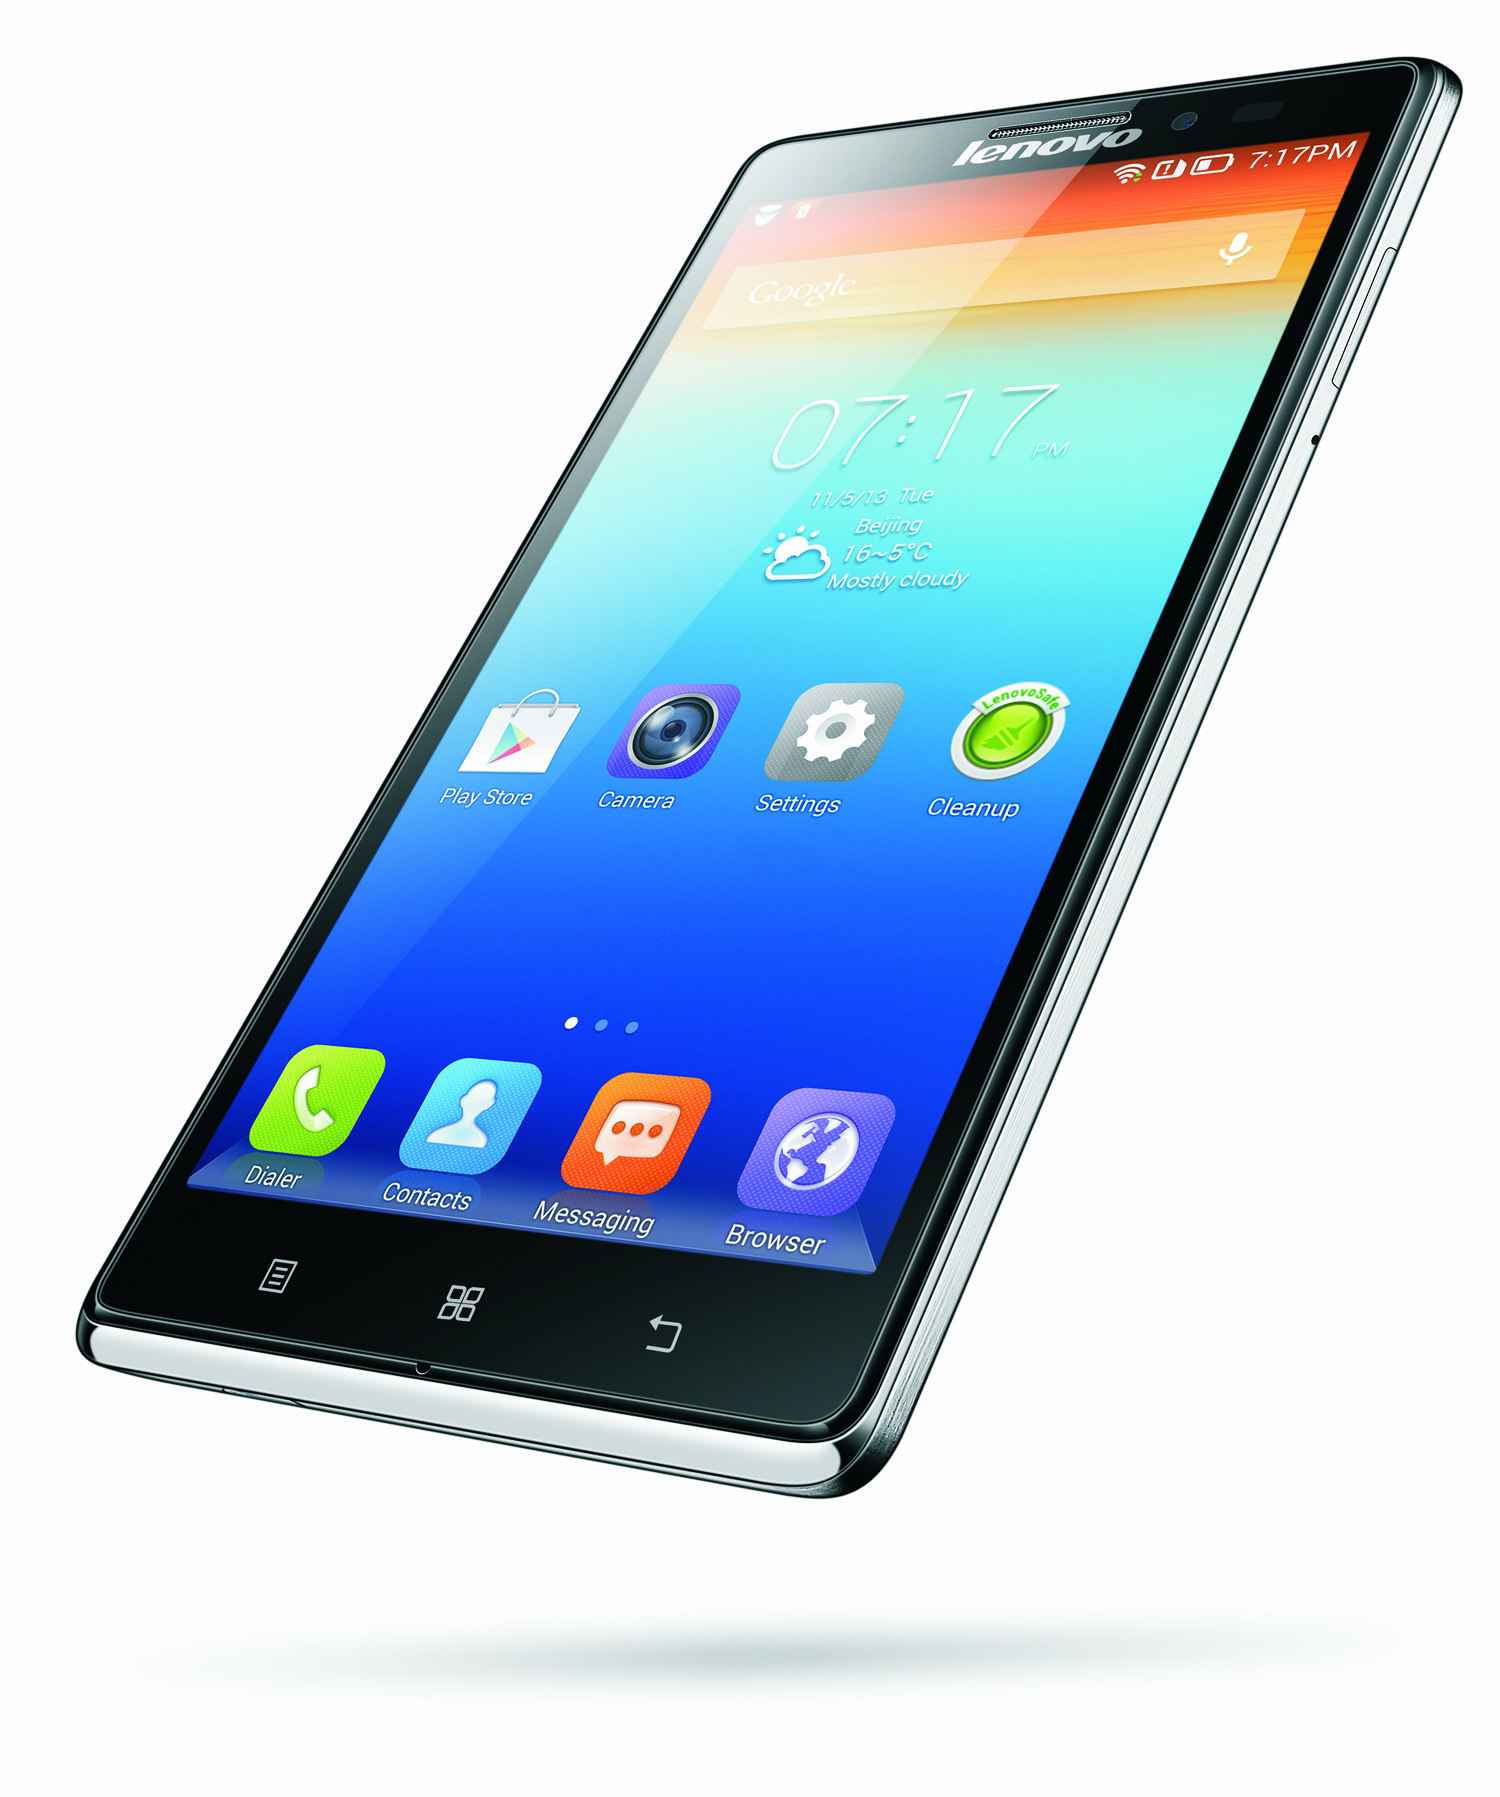 Lenovo Vibe Z Smartphone Announced Price And Specs